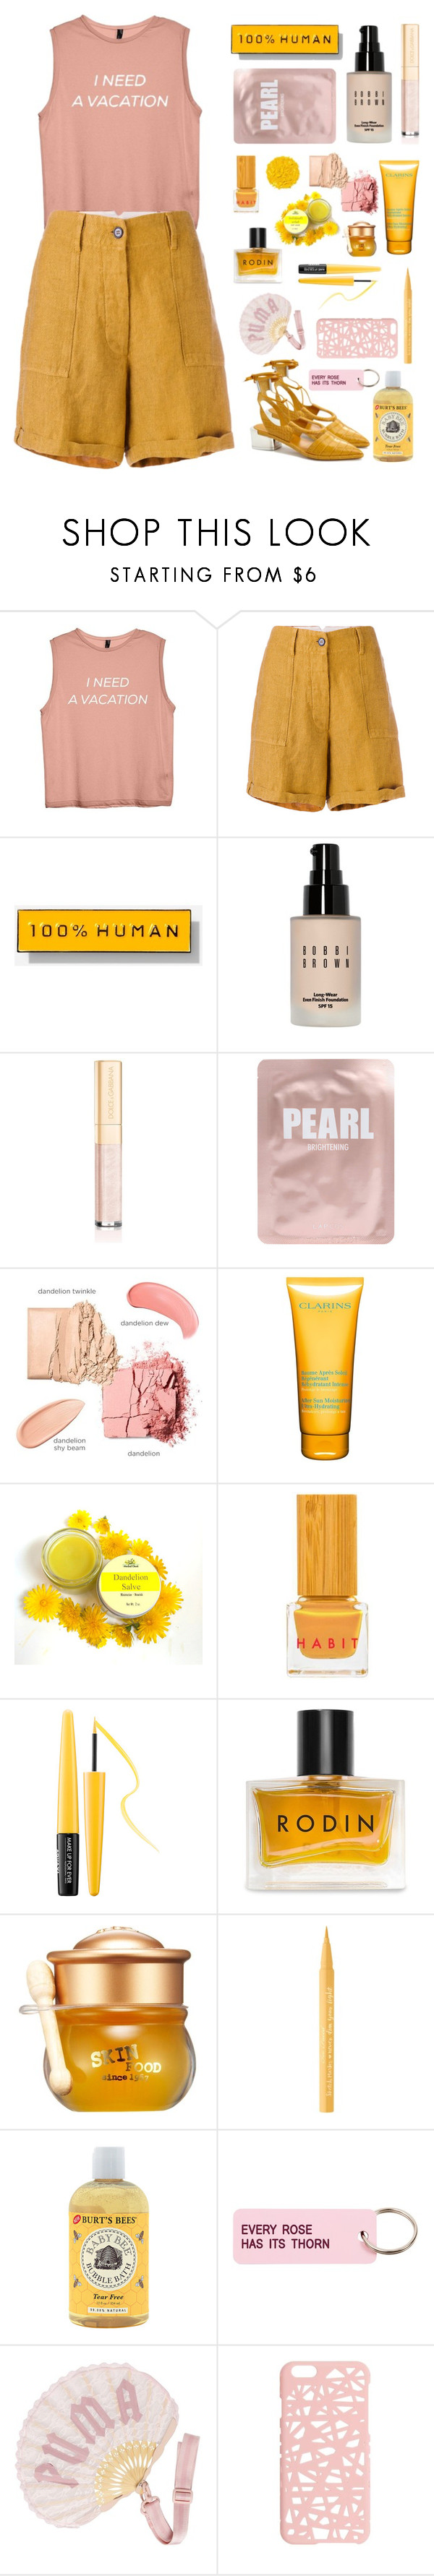 """""""Pink and yellow"""" by fanfanfann ❤ liked on Polyvore featuring Forte Forte, Everlane, Bobbi Brown Cosmetics, Dolce&Gabbana, Lapcos, Clarins, Illamasqua, Habit Cosmetics, MAKE UP FOR EVER and Rodin"""